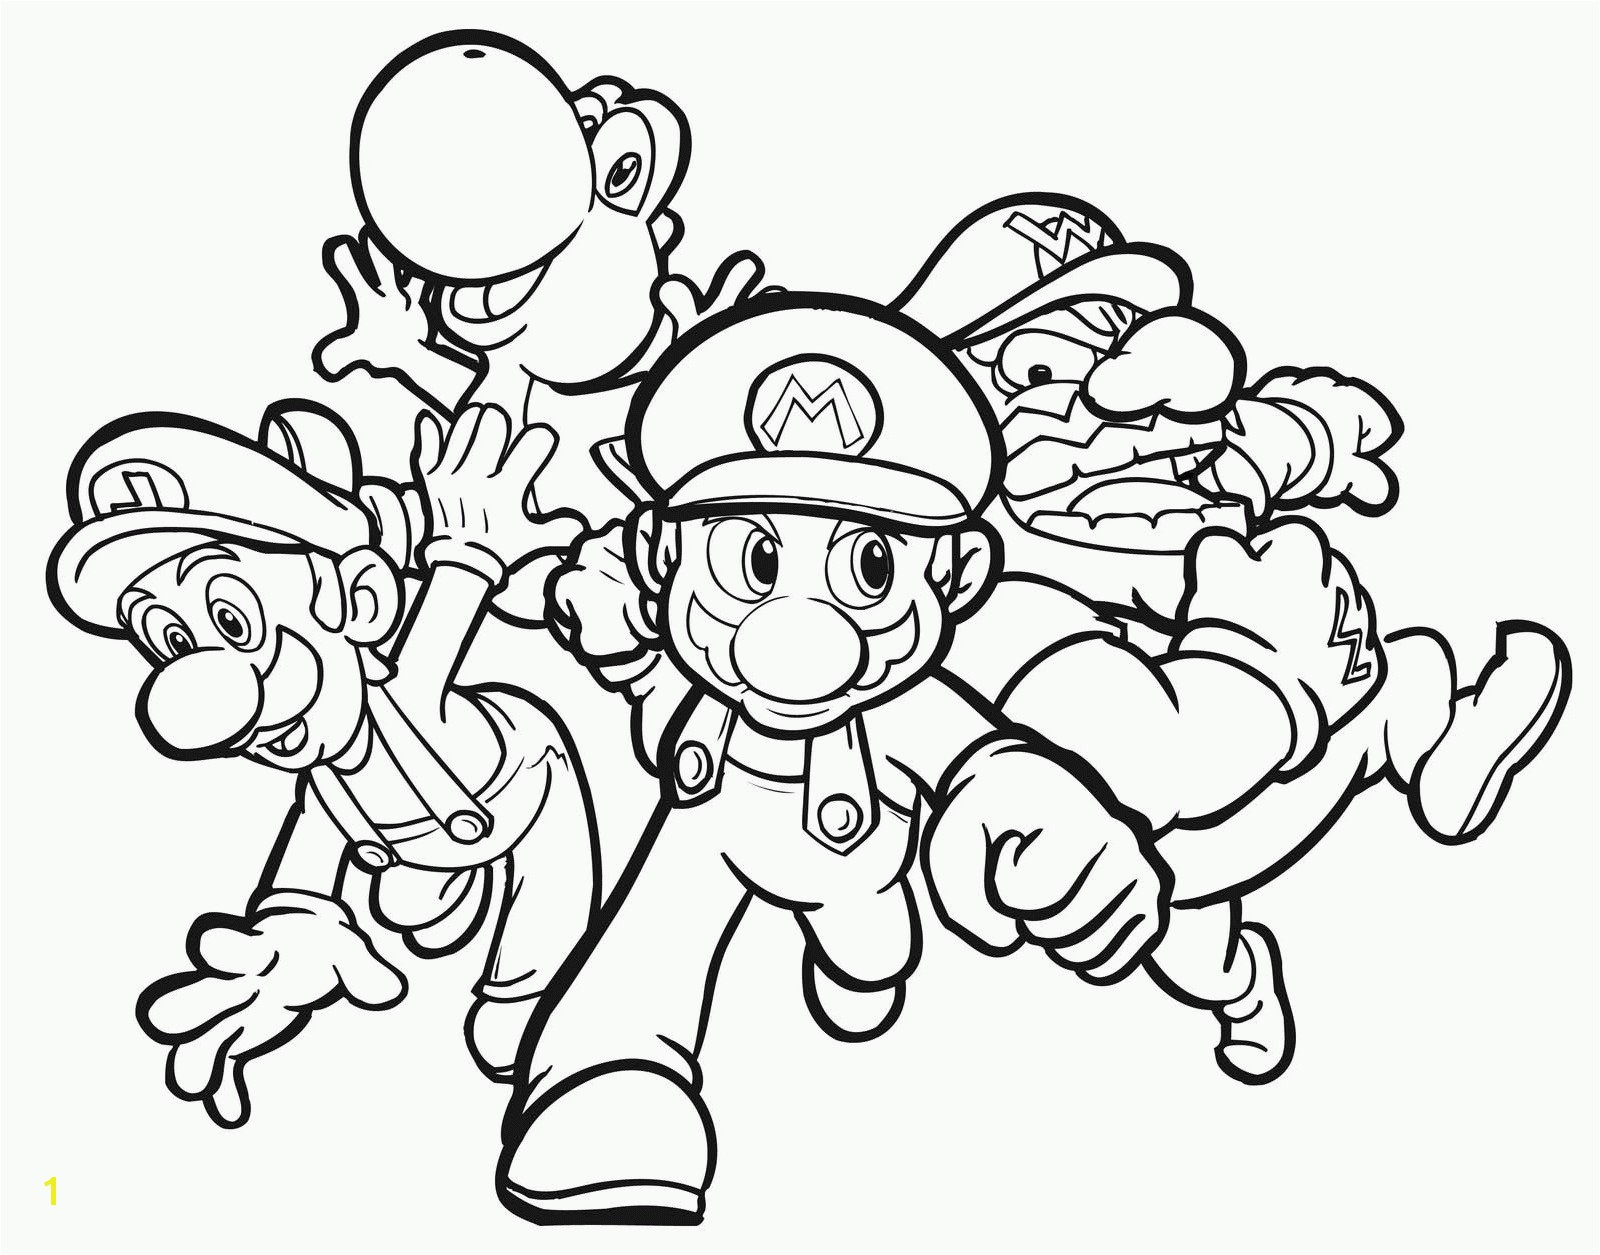 Mario and Luigi Coloring Pages Awesome Coloring Pages Mario Kart Coloring Home Mario and Luigi